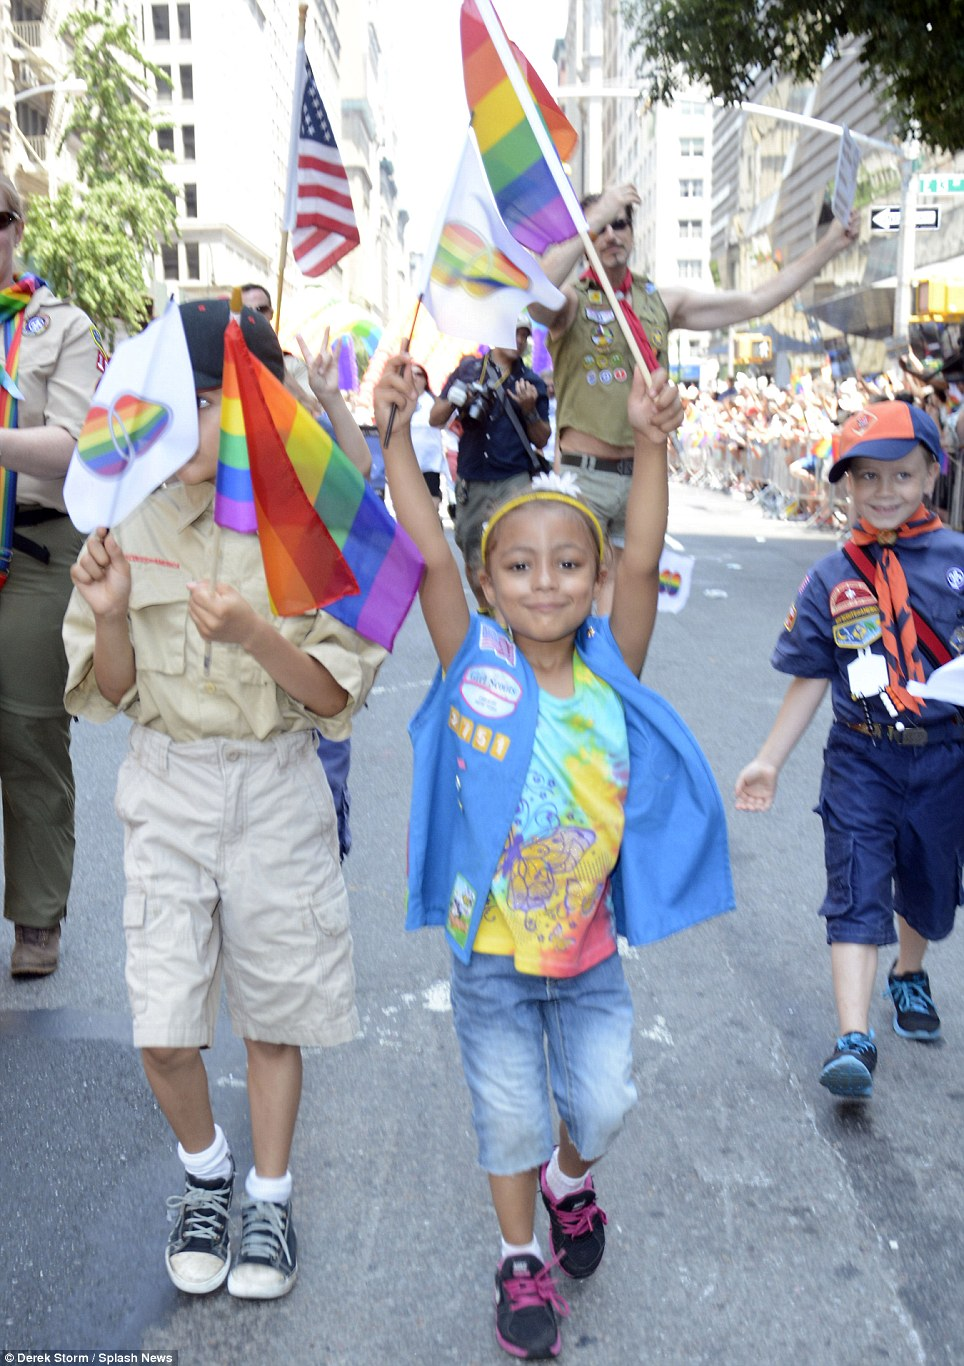 Children are seen participating in Sunday's New York march